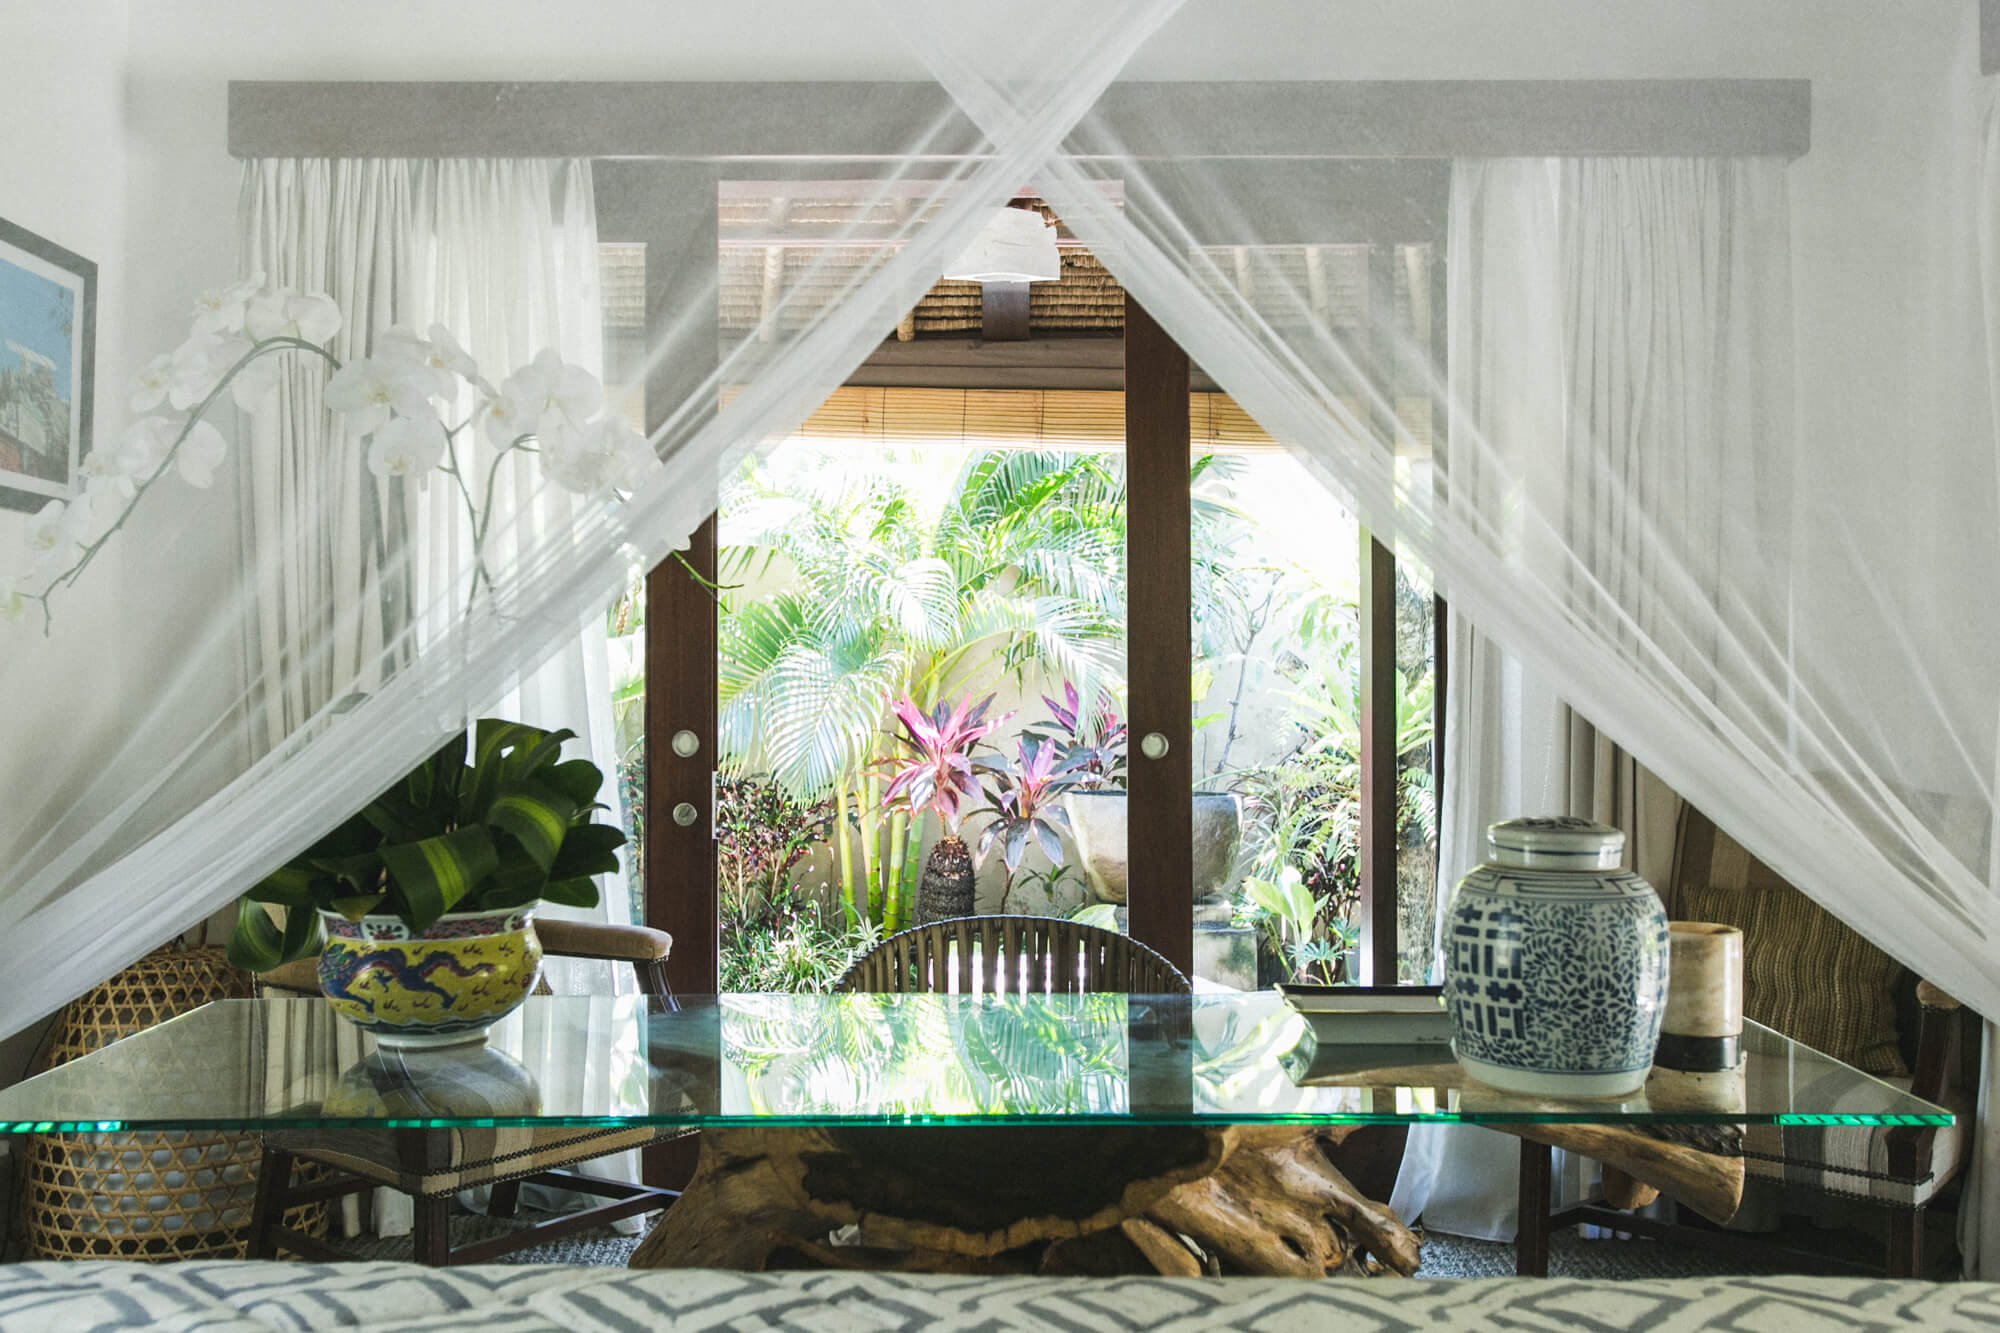 Room-details-at-The-Place-Retreats-Bali